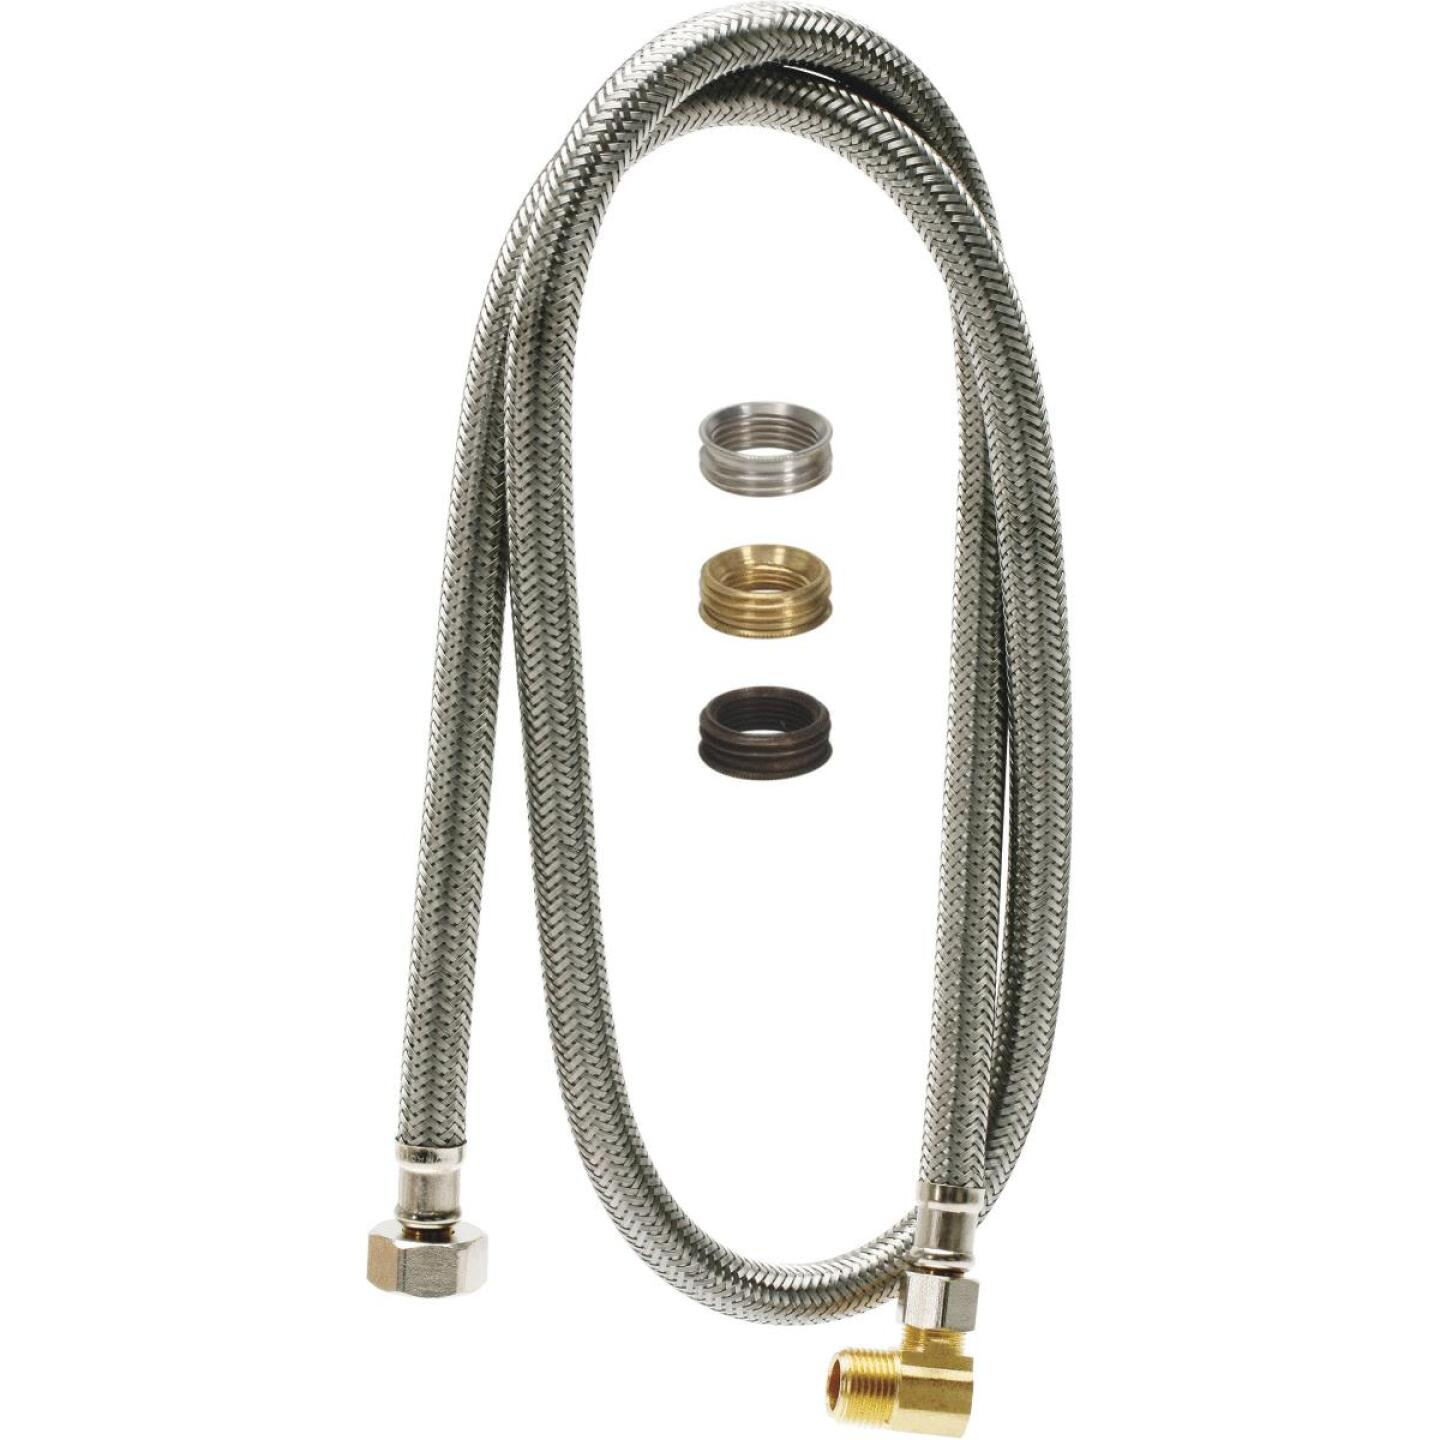 Fluidmaster Universal Fit 60 In. Braided Stainless Steel Dishwasher Connector Image 2